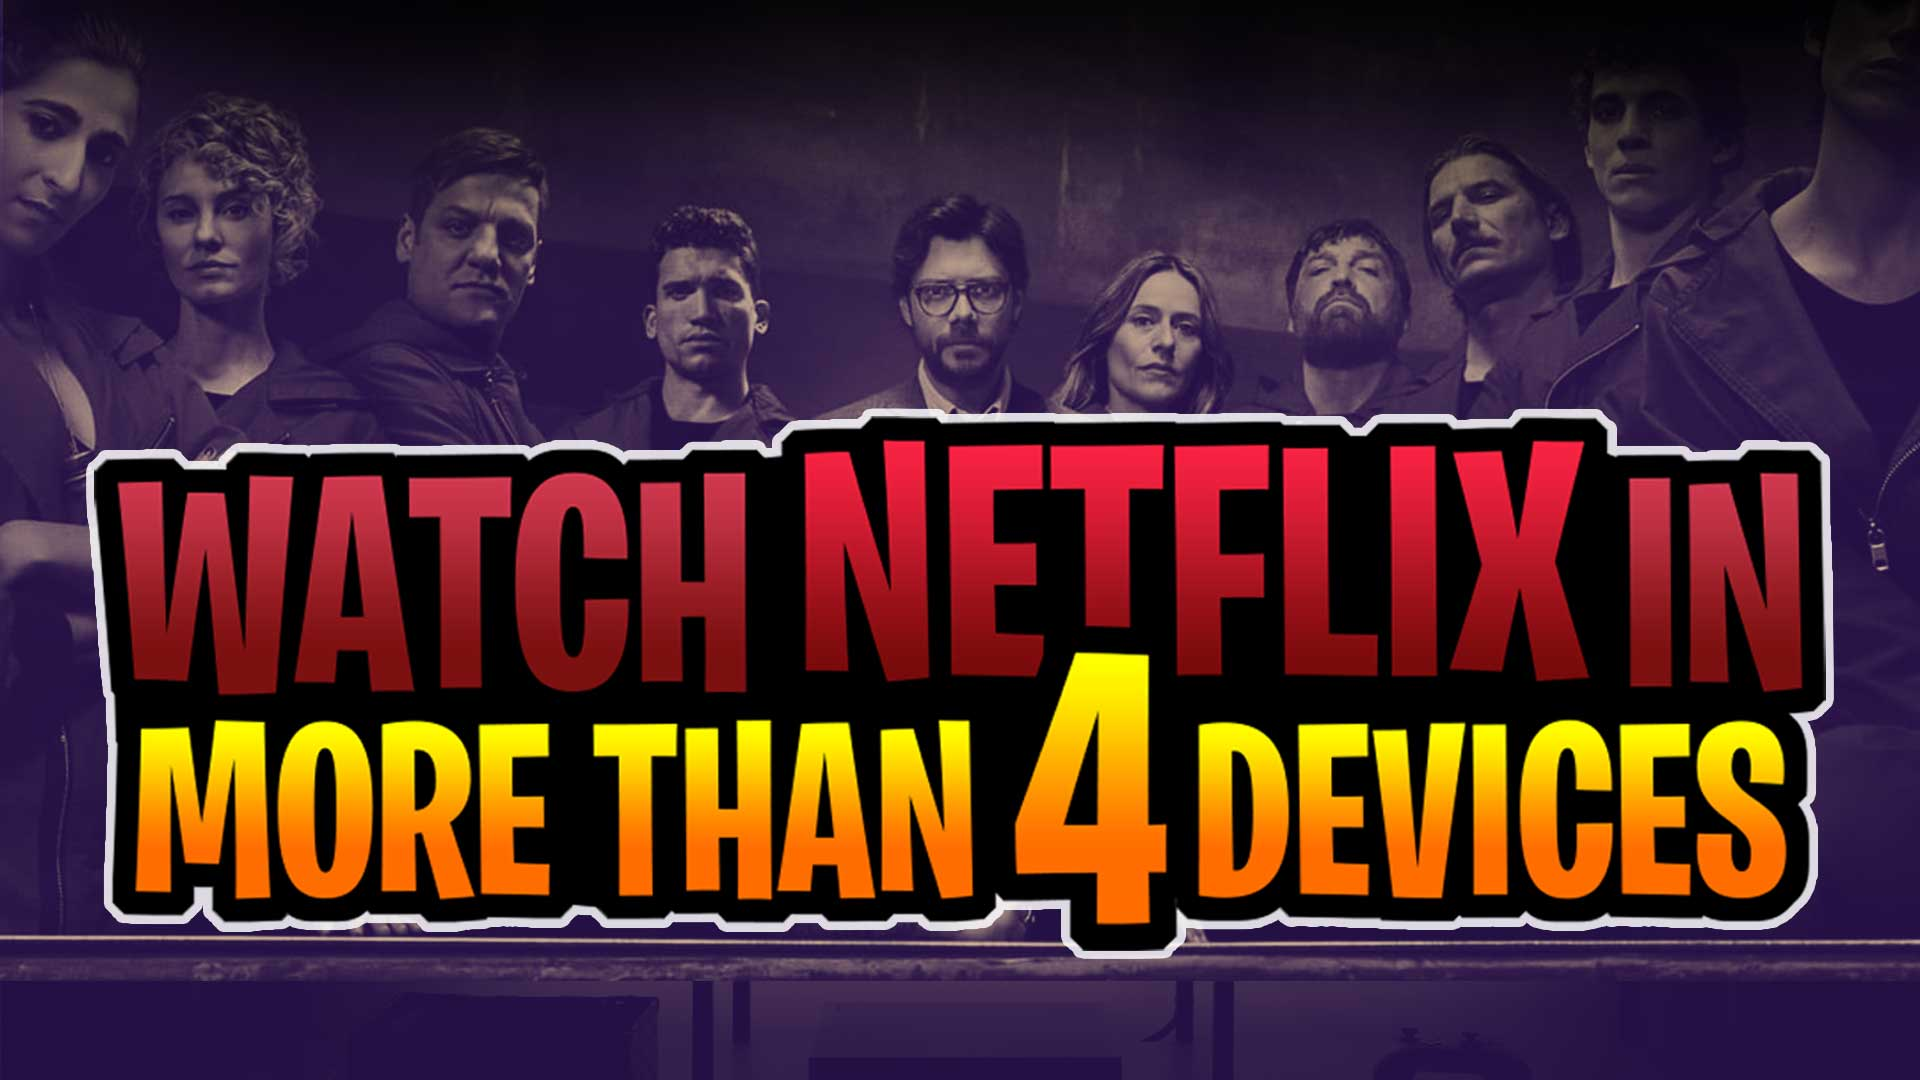 How to bypass Screen Limit and watch Netflix in more than 4 devices at a time